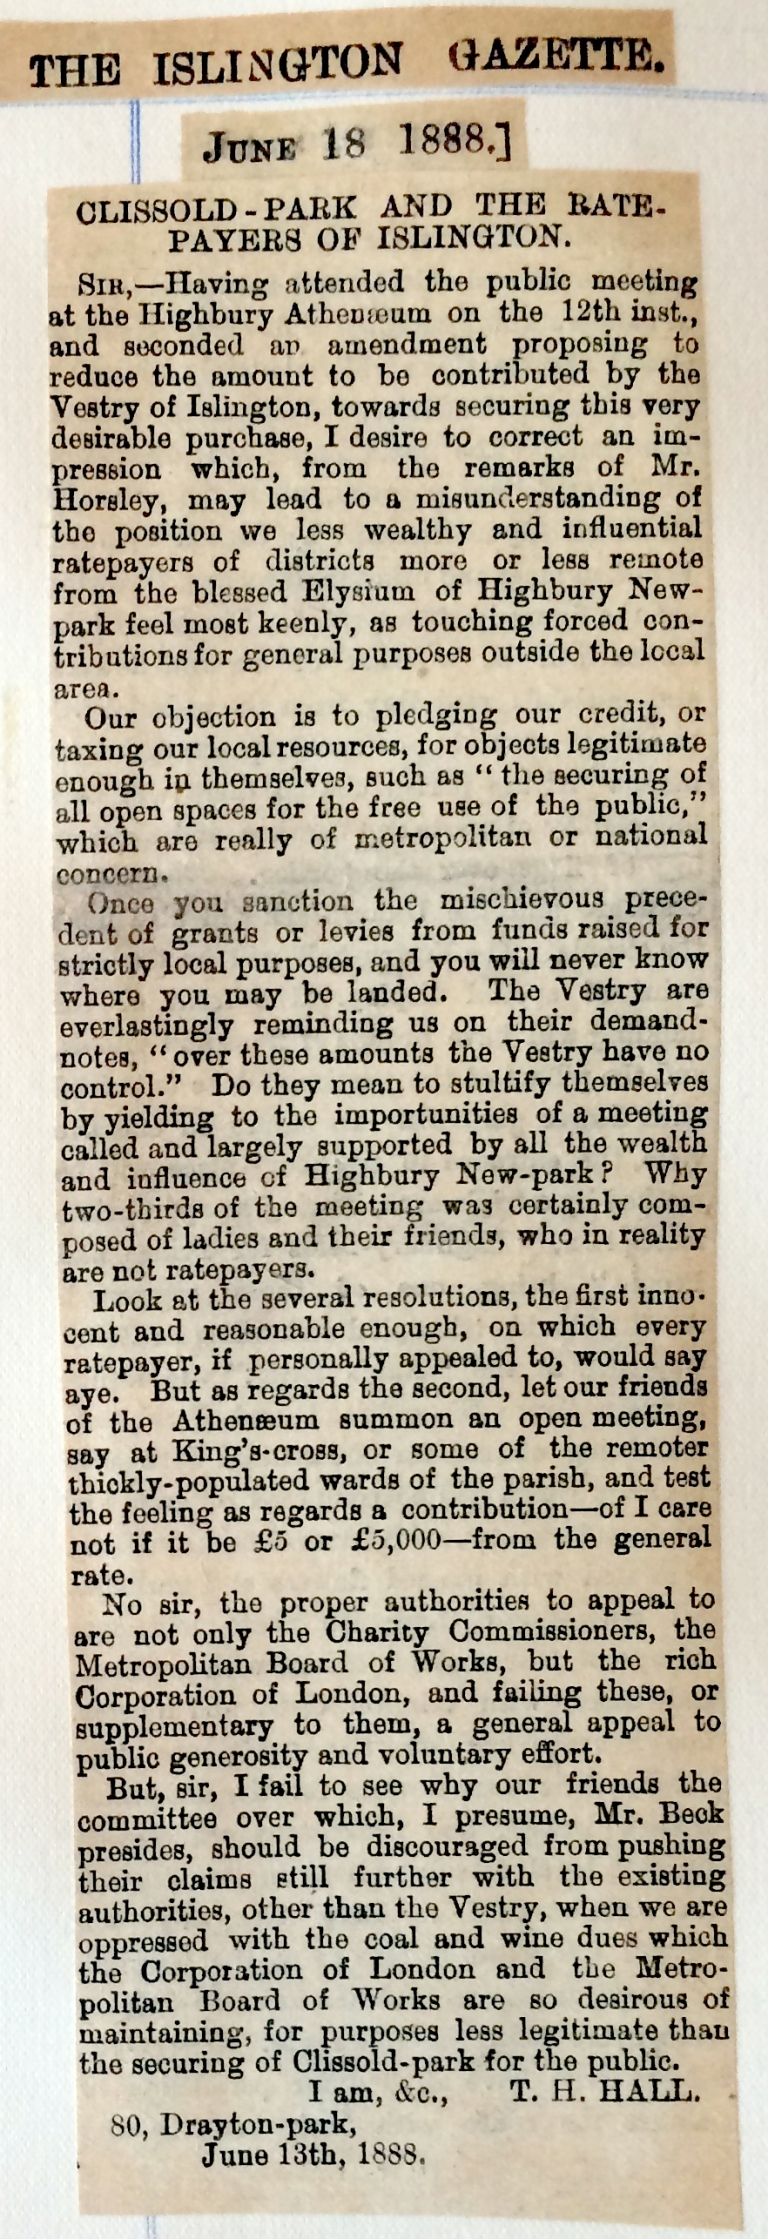 18_06_1888 NEWS CLIPPING Letter to the Islington Gazette [CHECKED].JPG